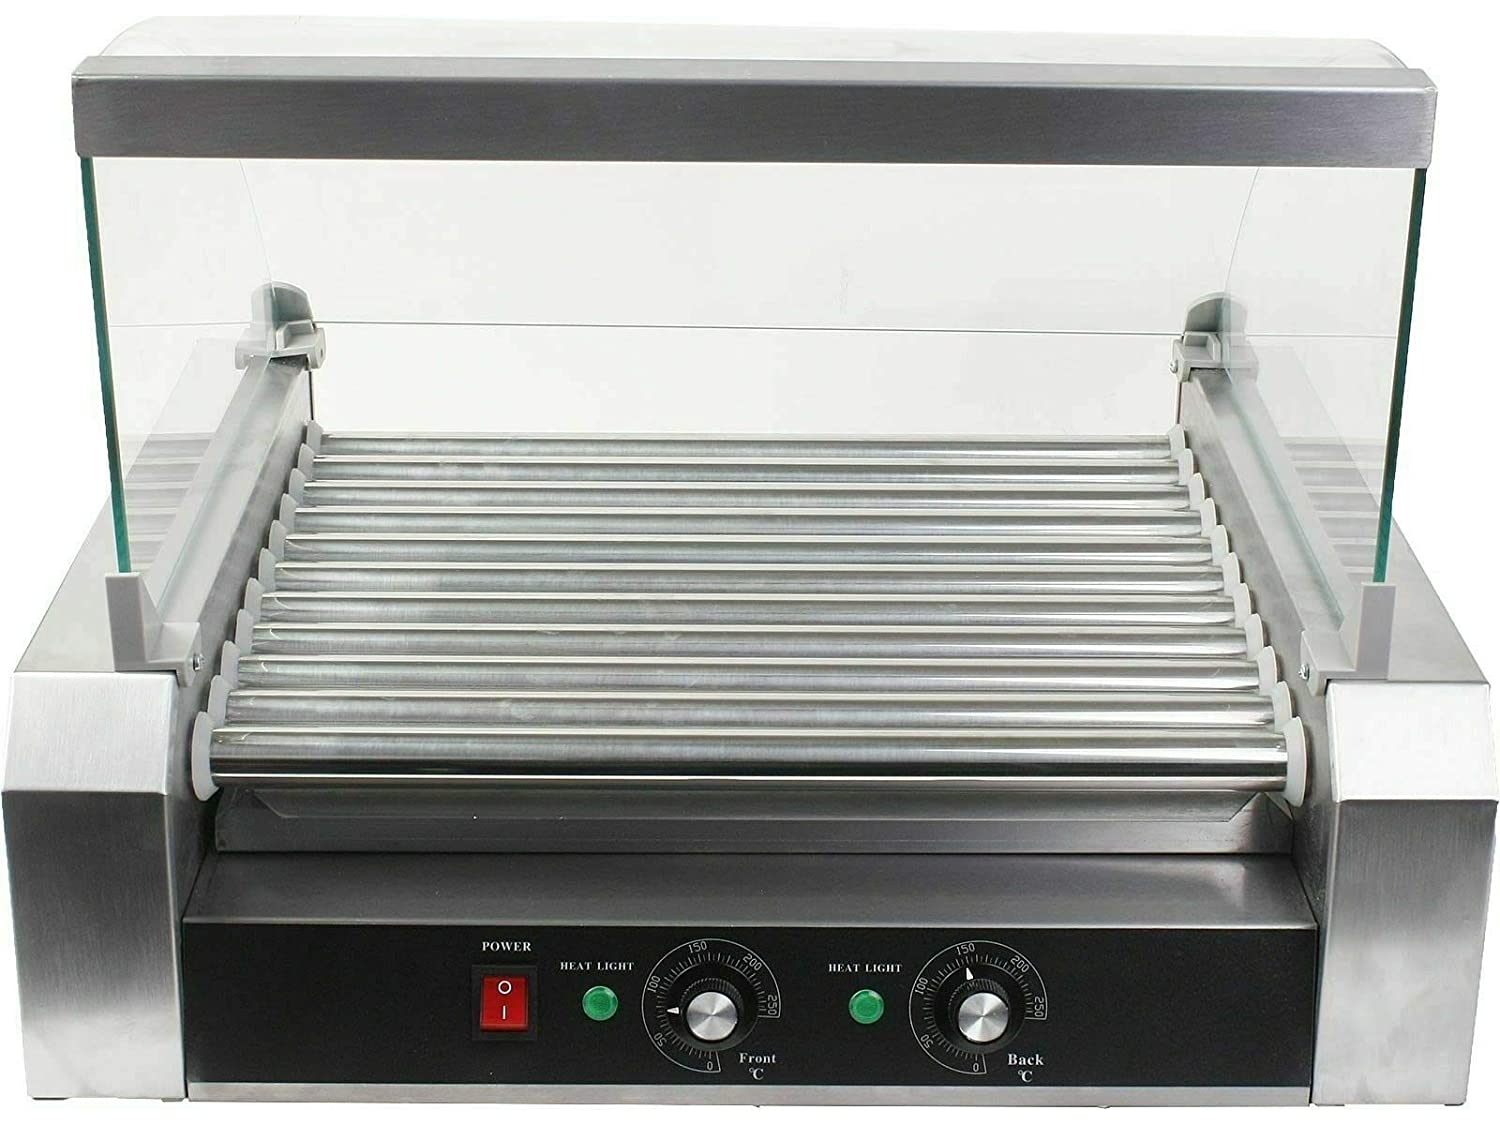 Home Rich Roller 30 HotDog Grill Cooker Hot Dog 11 Roller Machine Grill Machine W/cover CE New Electric Warmer Stainless